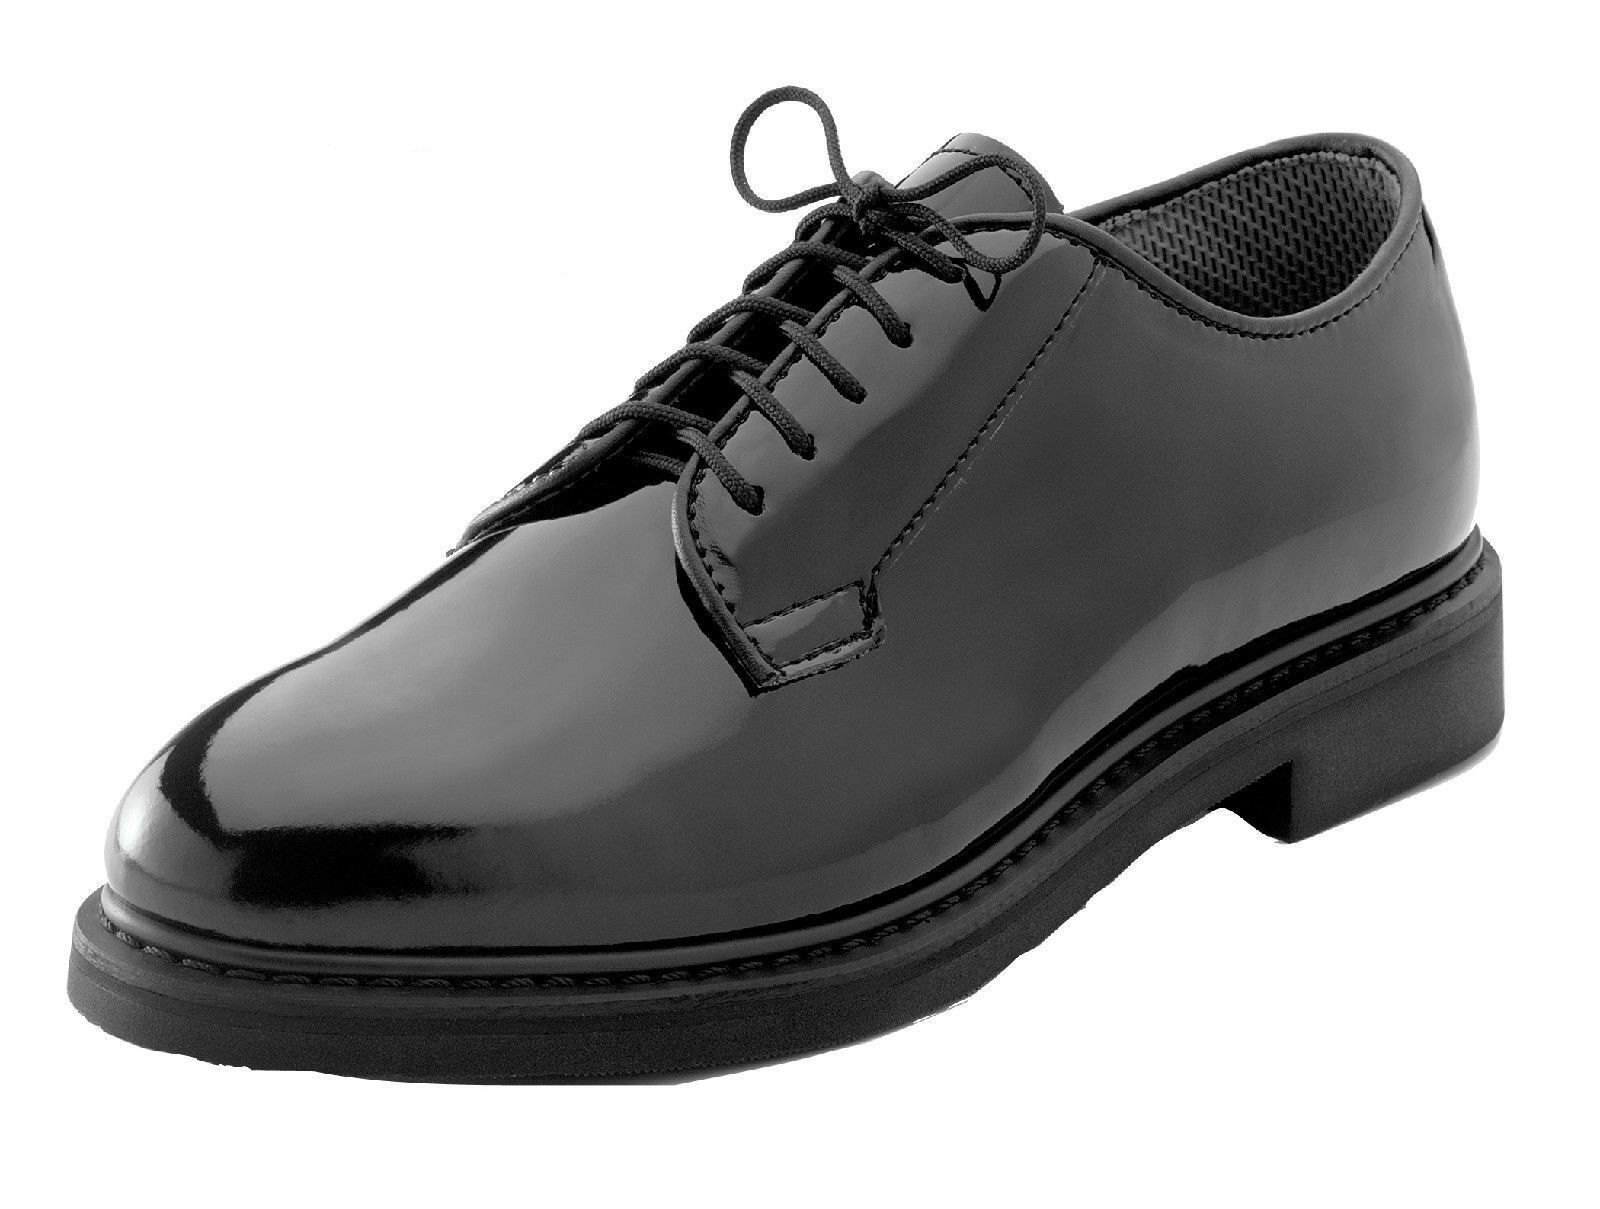 oxford dress shoes uniform various high gloss black rothco 5055 various uniform sizes 9ca443